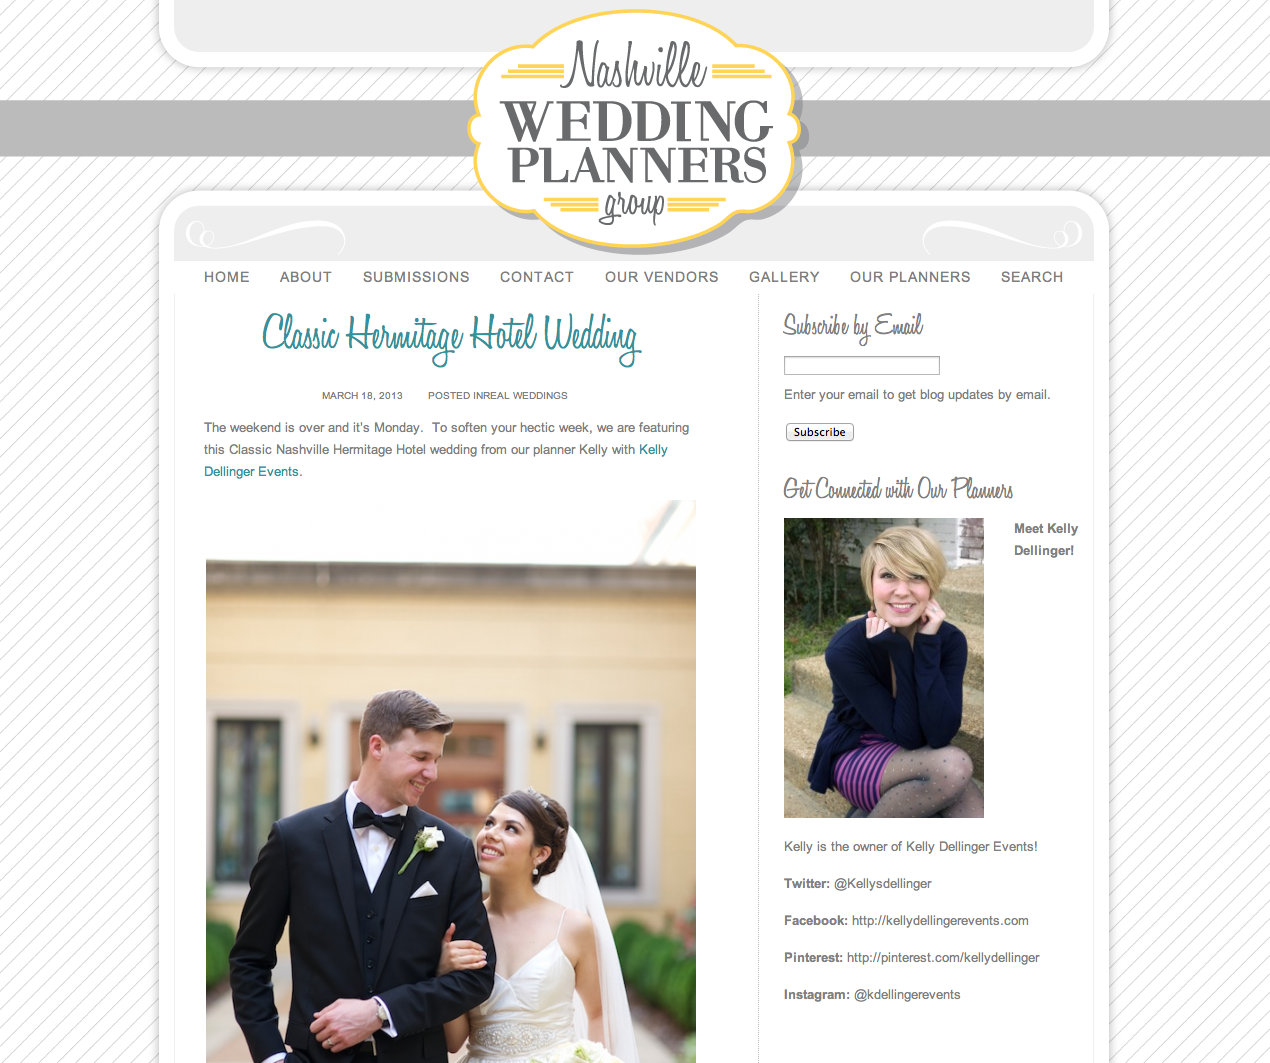 Nashville Wedding Planners Group Glessner Photography.png